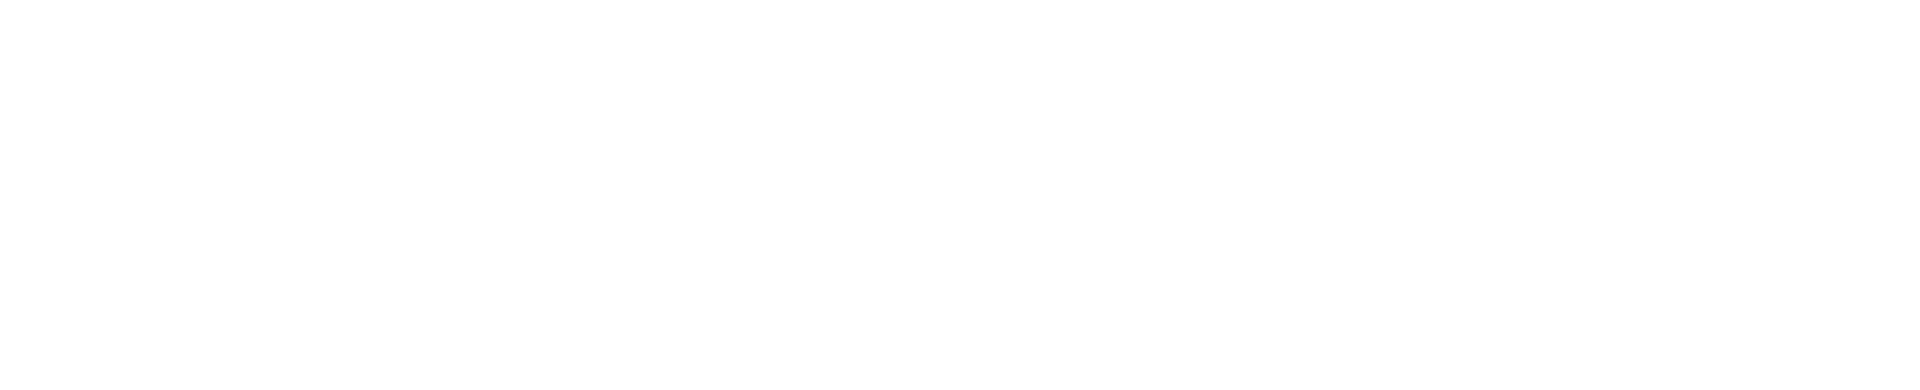 imb-in-the-news